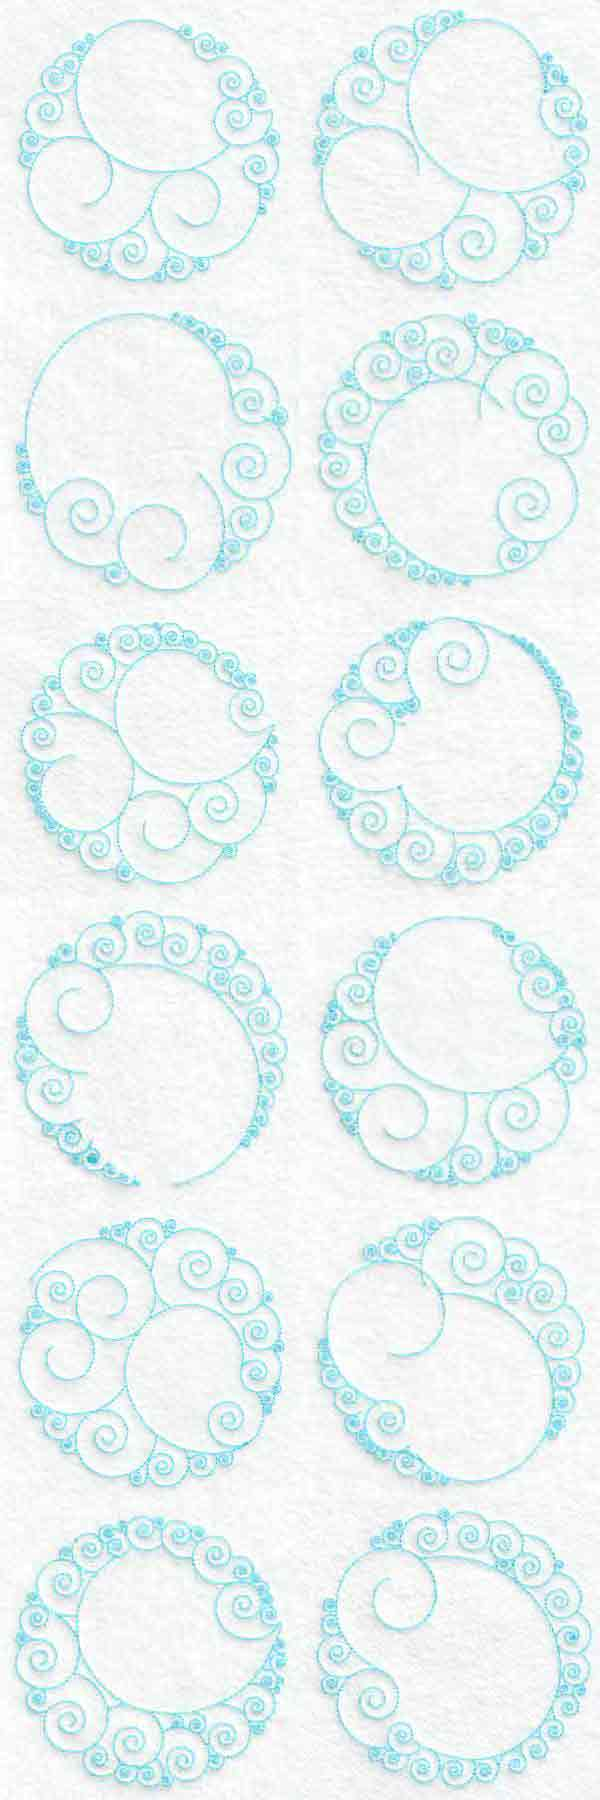 Circle Backgrounds Embroidery Machine Design Details